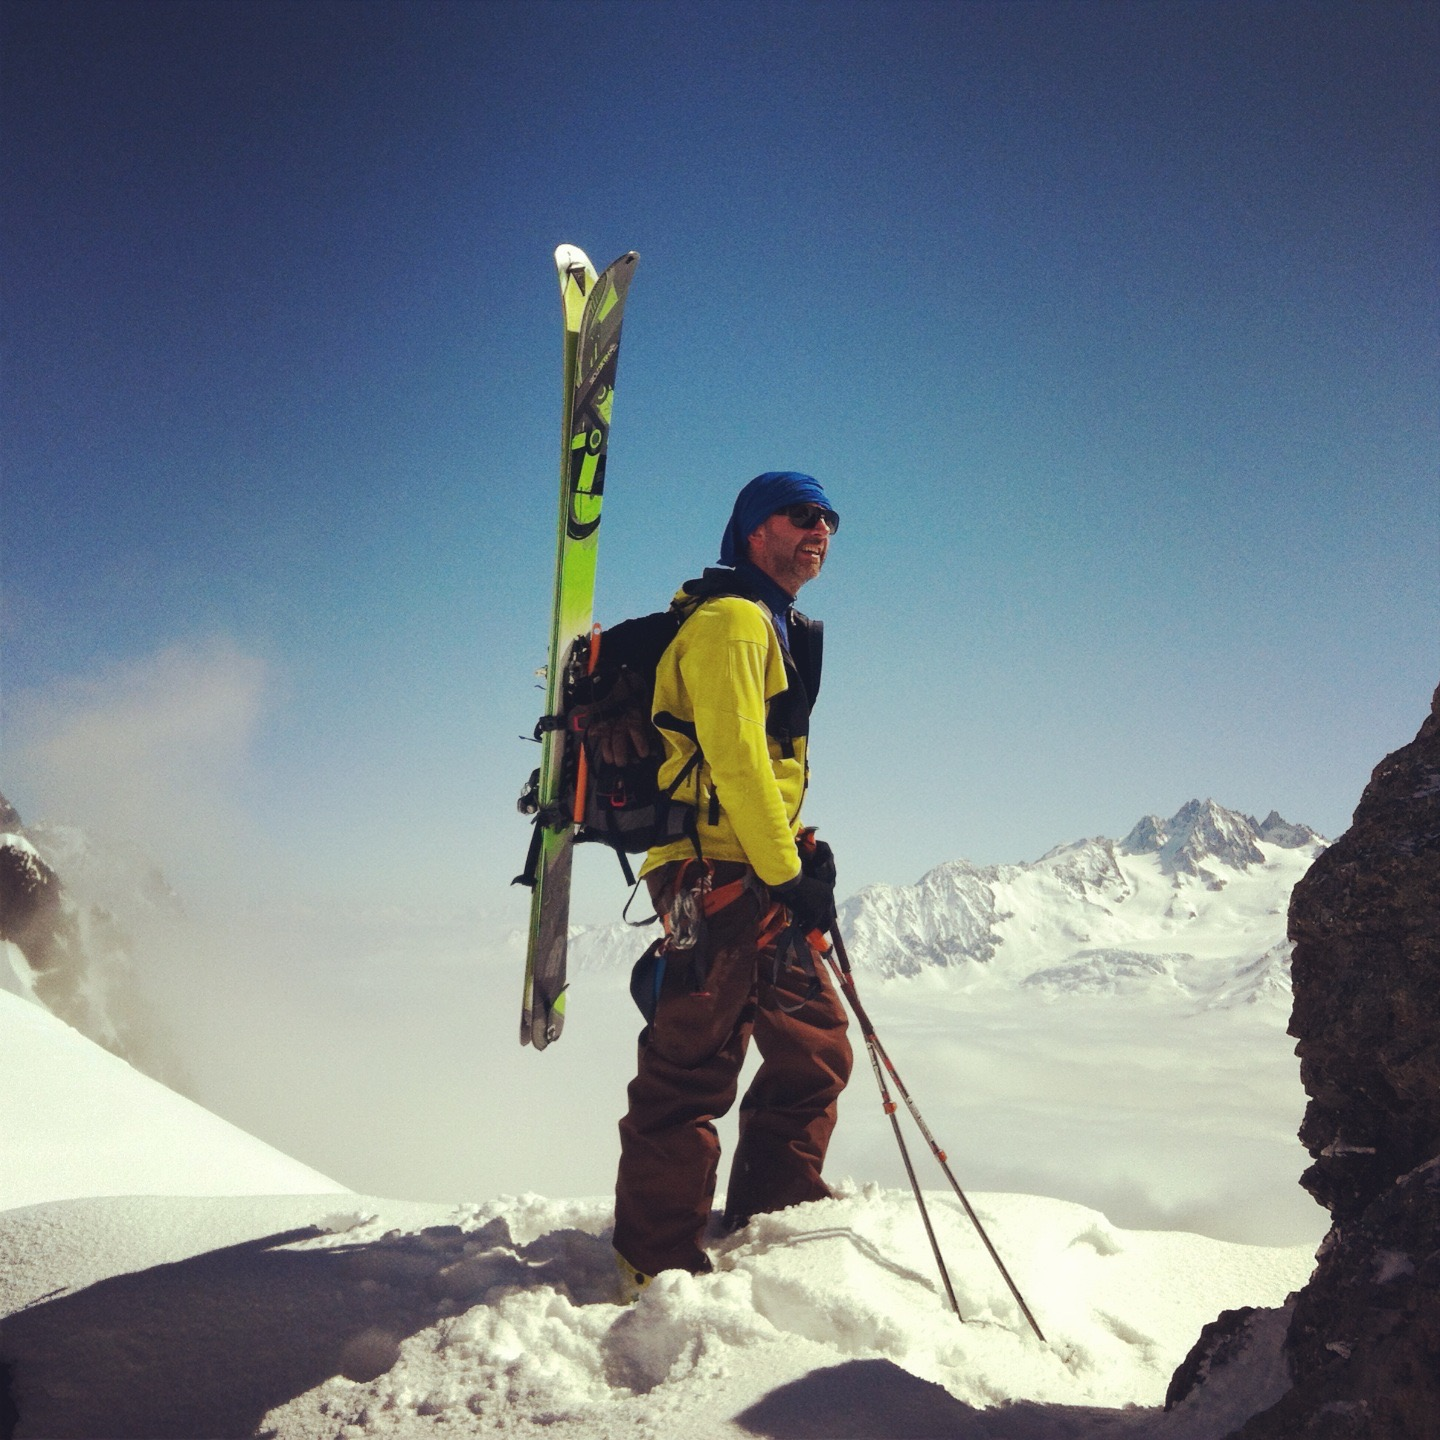 ski touring - at the top